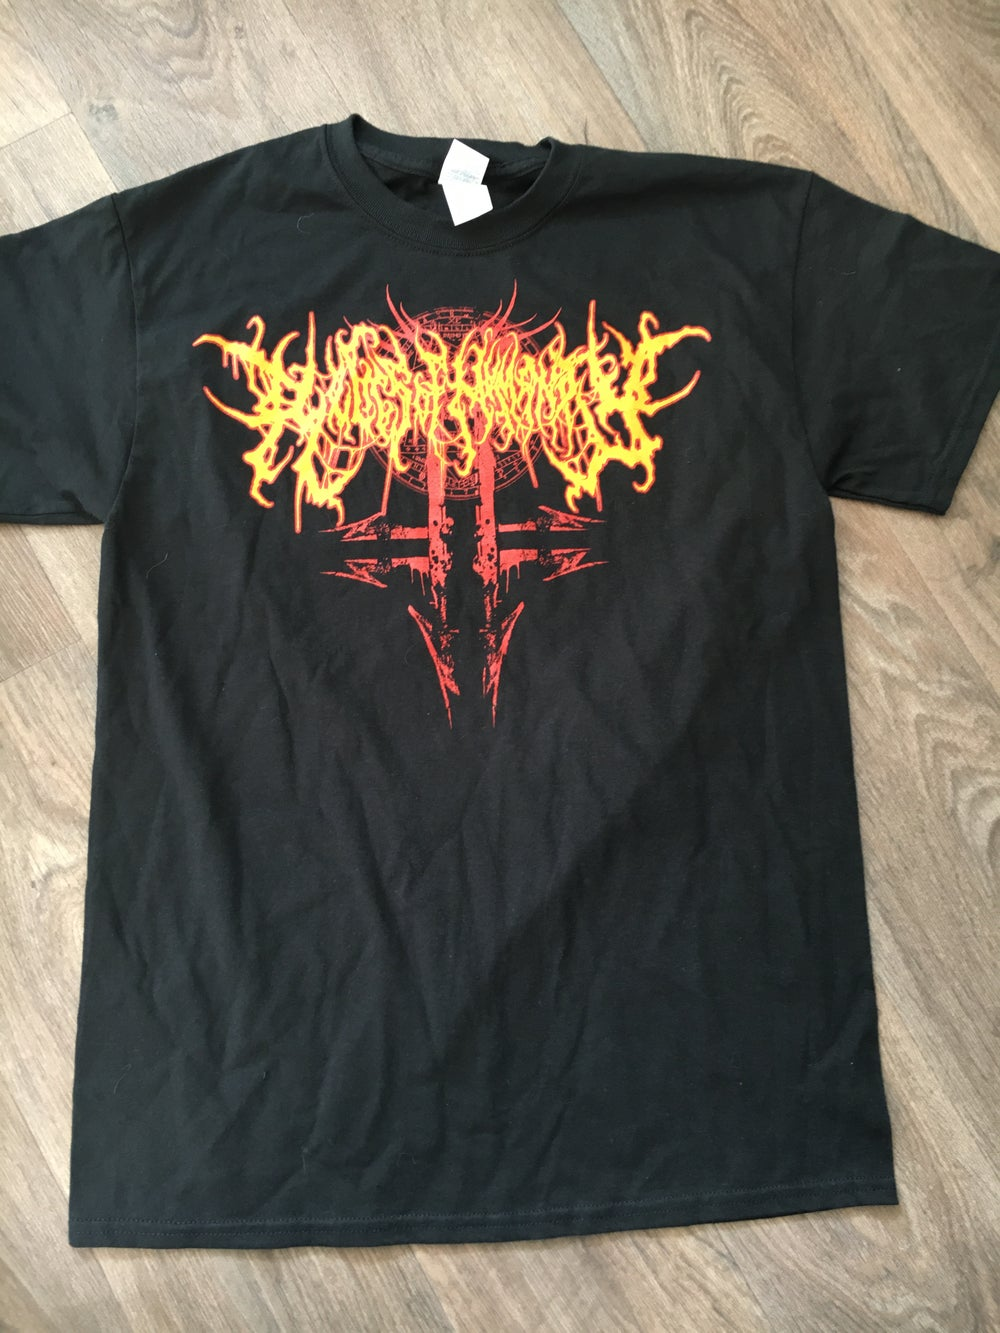 RELICS OF HUMANITY - The Worst Of You Was CRUFIFIED T-Shirt